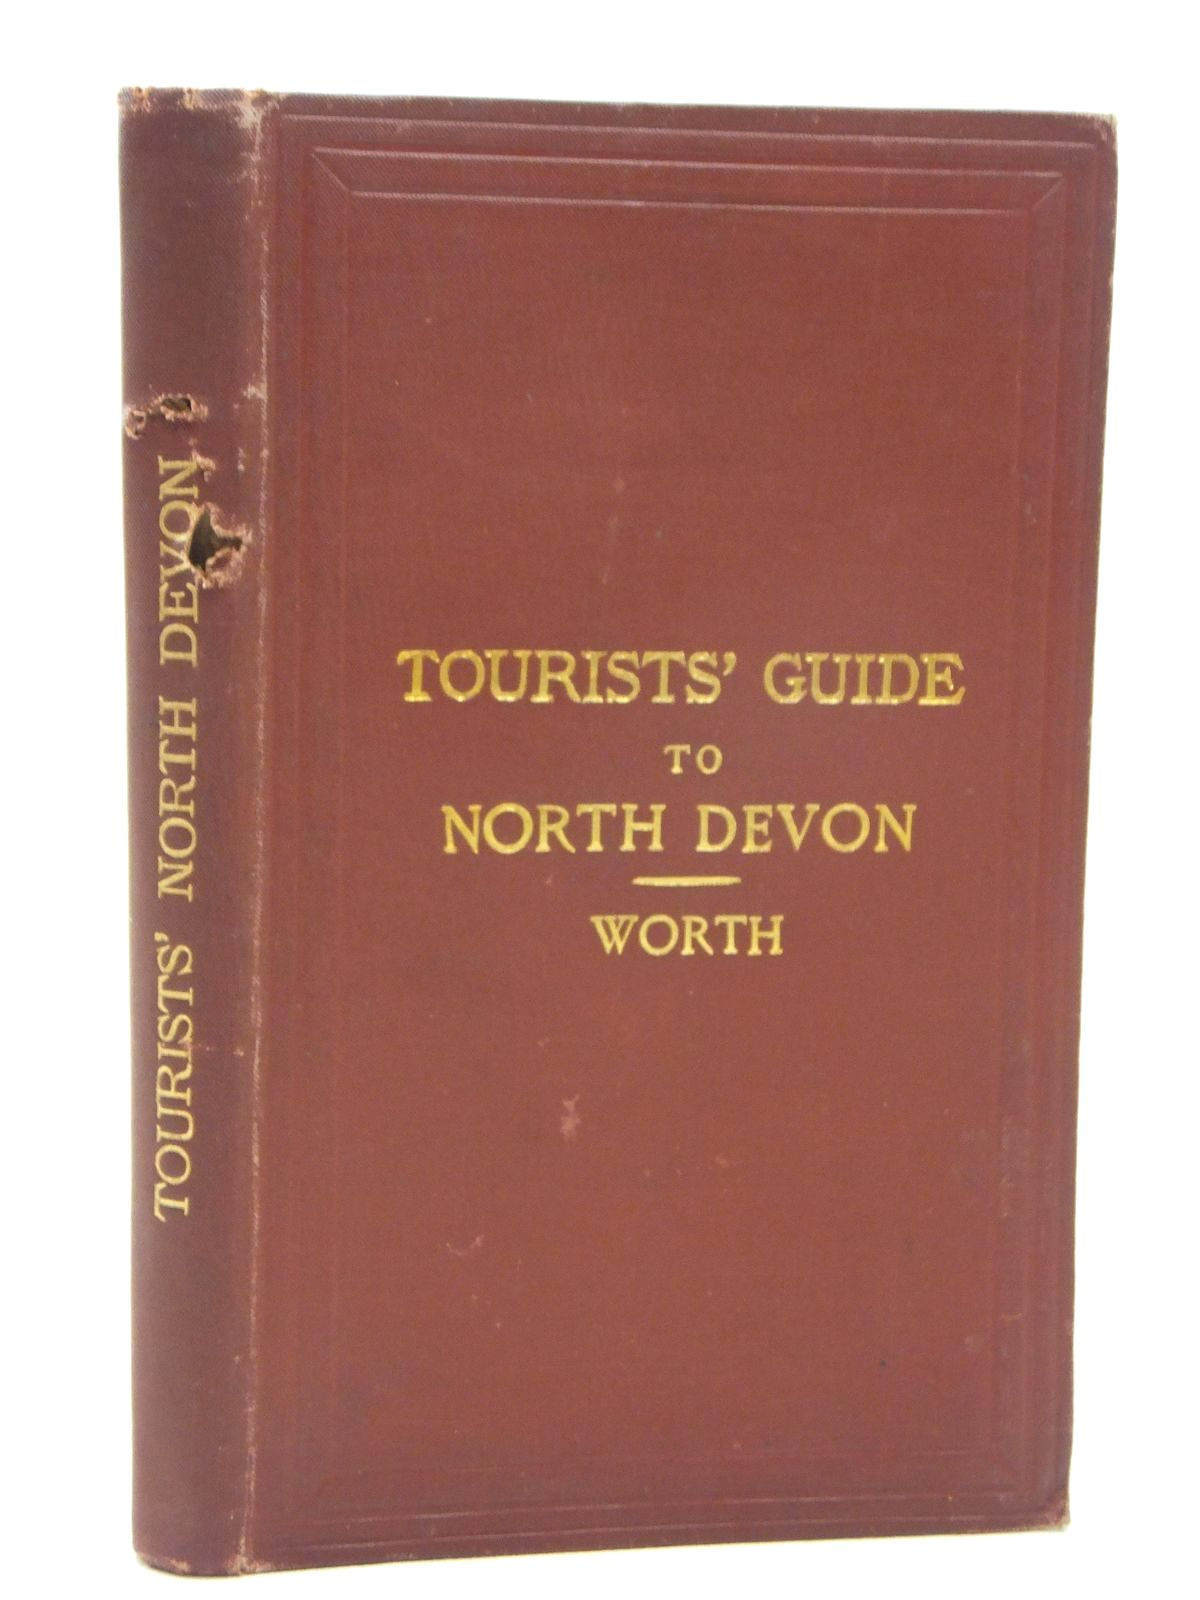 Photo of TOURIST'S GUIDE TO NORTH DEVON written by Worth, R.N. published by Edward Stanford (STOCK CODE: 1609473)  for sale by Stella & Rose's Books